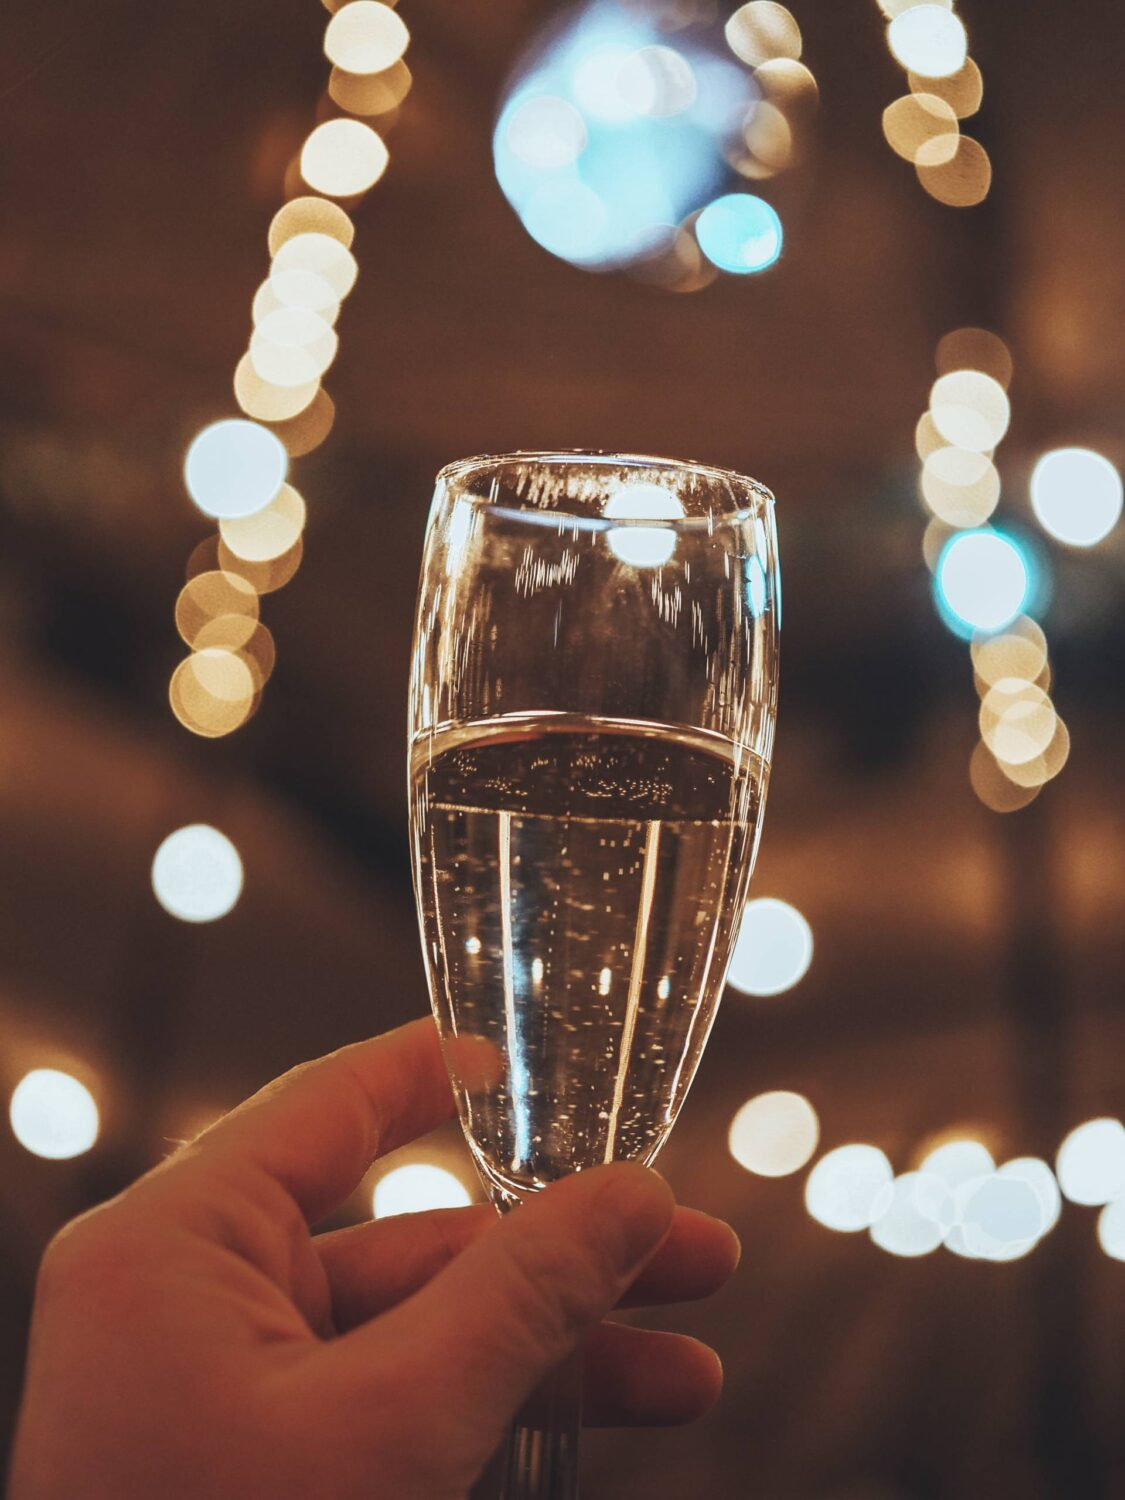 Guests are given a complimentary arrival drink (either prosecco, beer or a soft drink) when attending a Scandinavia Events Christmas party in Milton Keynes